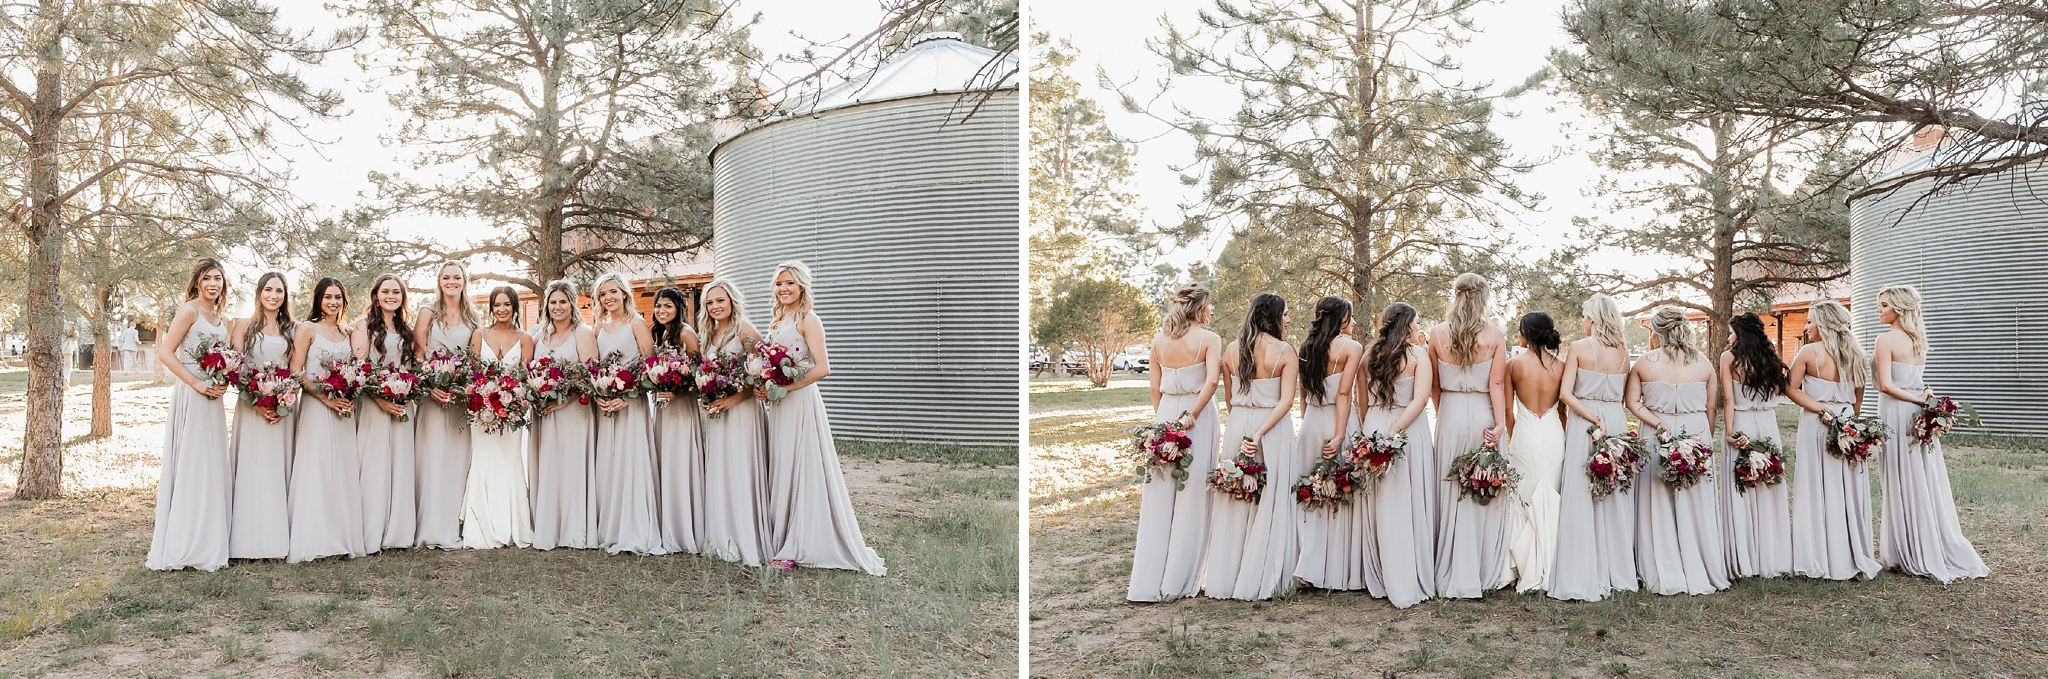 Alicia+lucia+photography+-+albuquerque+wedding+photographer+-+santa+fe+wedding+photography+-+new+mexico+wedding+photographer+-+new+mexico+wedding+-+new+mexico+wedding+-+colorado+wedding+-+bridesmaids+-+bridesmaid+style_0004.jpg